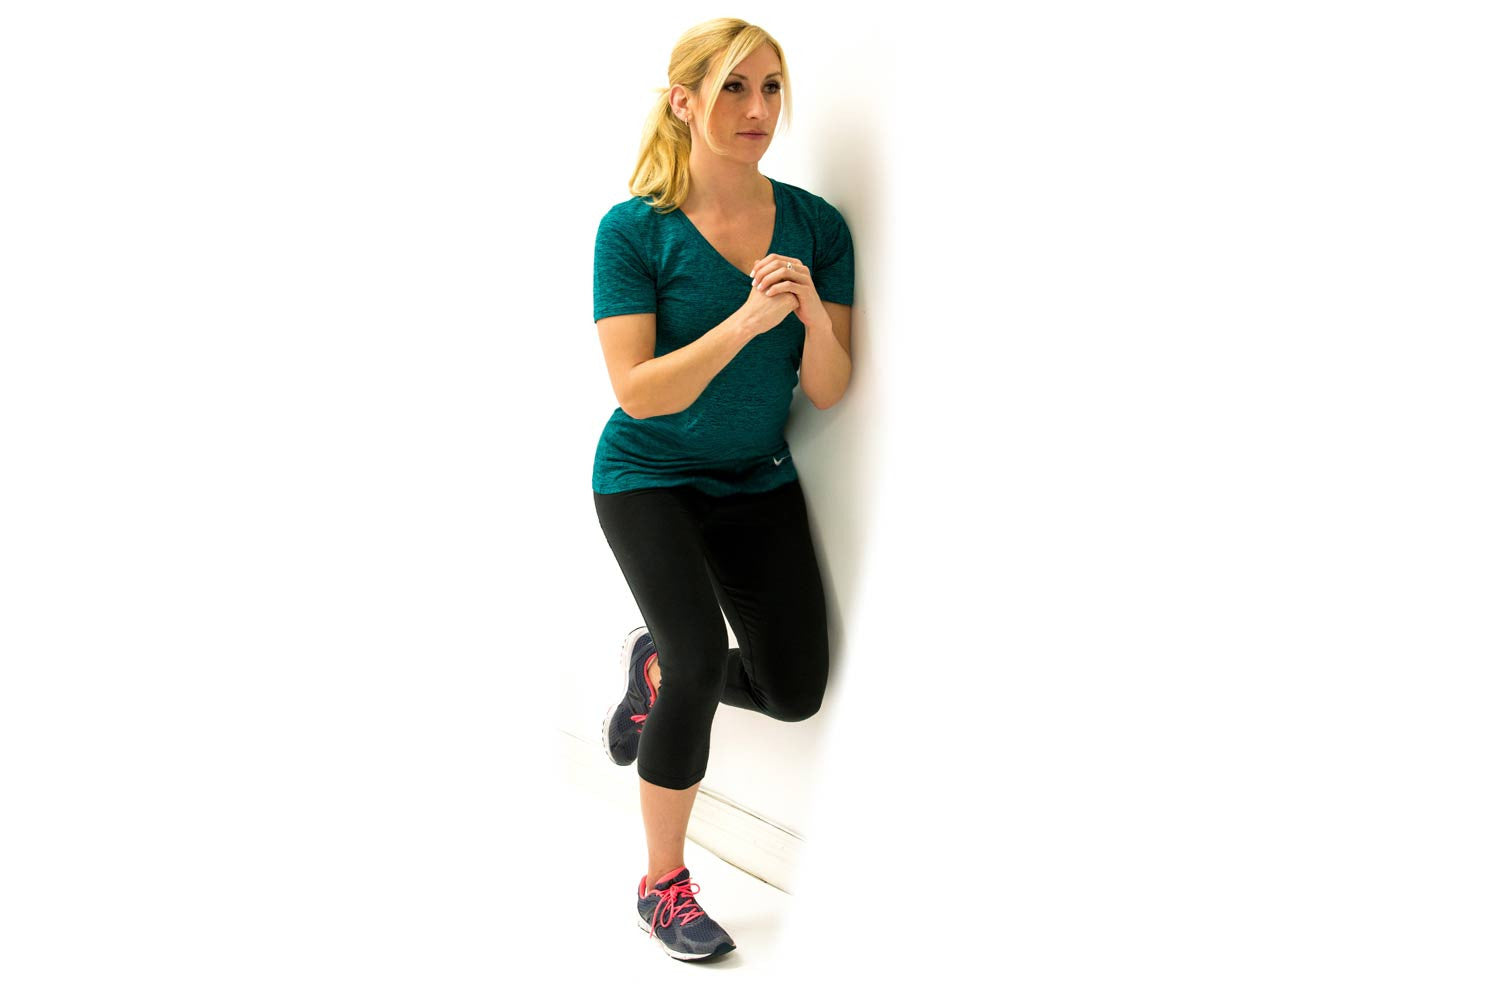 6 Exercises to Improve Your Squat & Reduce Knee Pain - Buy Resistance Bands | ProSourceFit